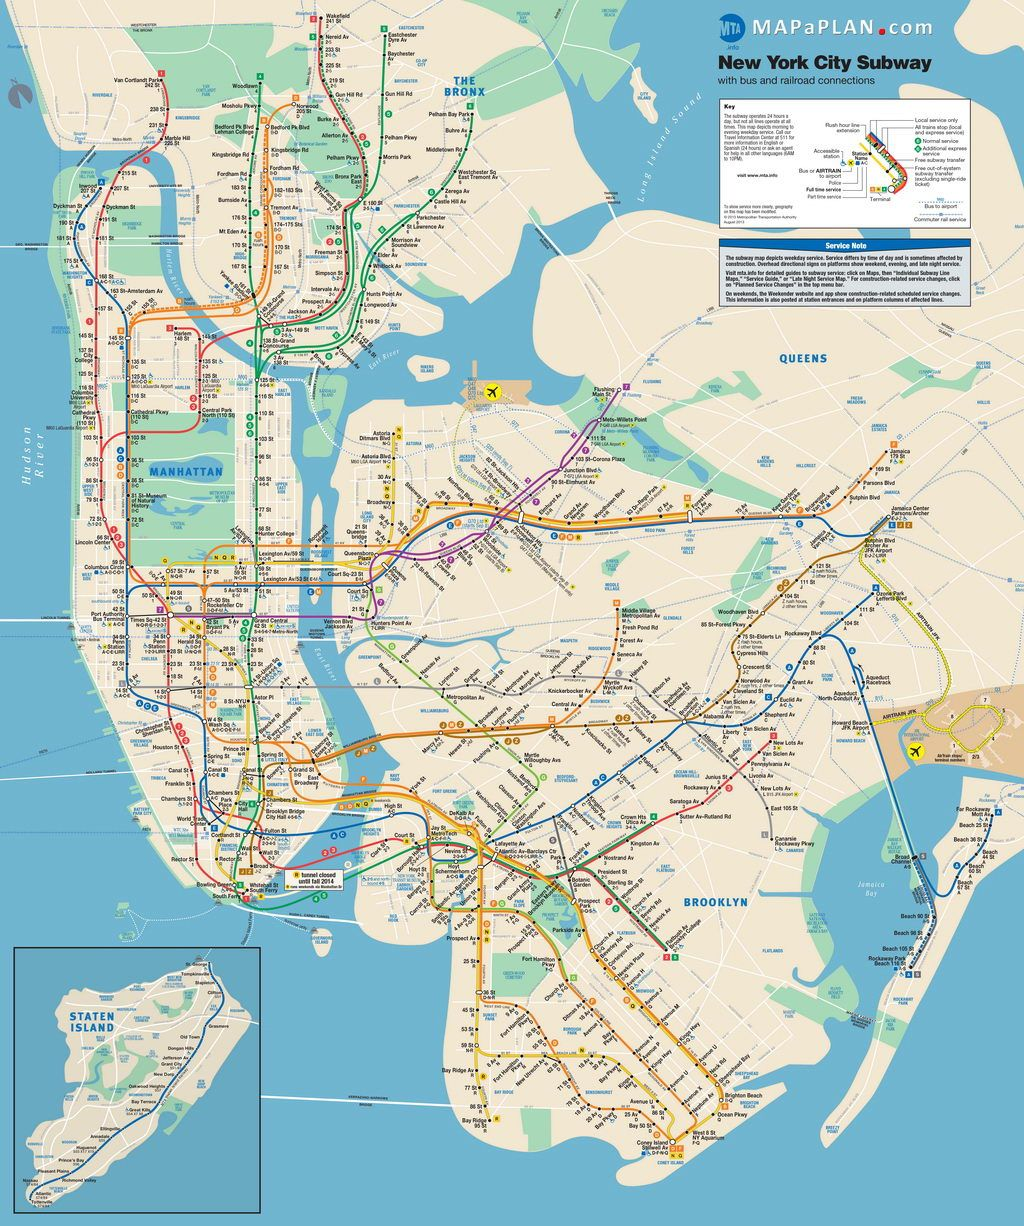 centralparkplacesnewyorktoptouristattractionsmap – Tourist Attractions Map In New York City